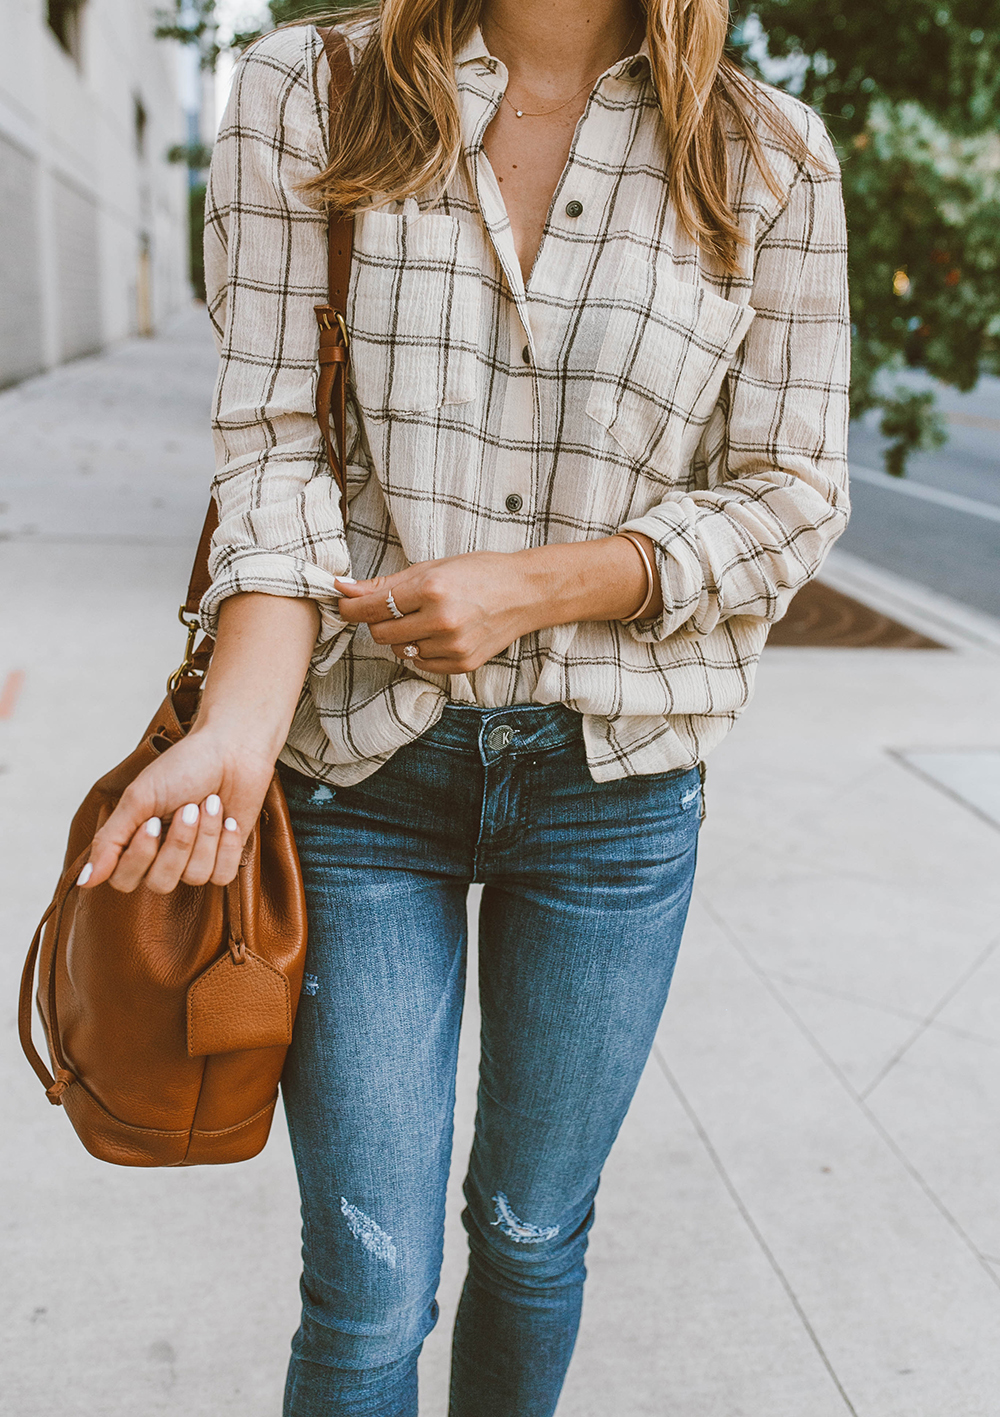 livvyland-blog-olivia-watson-austin-texas-fashion-style-blogger-nordstrom-anniversary-sale-2